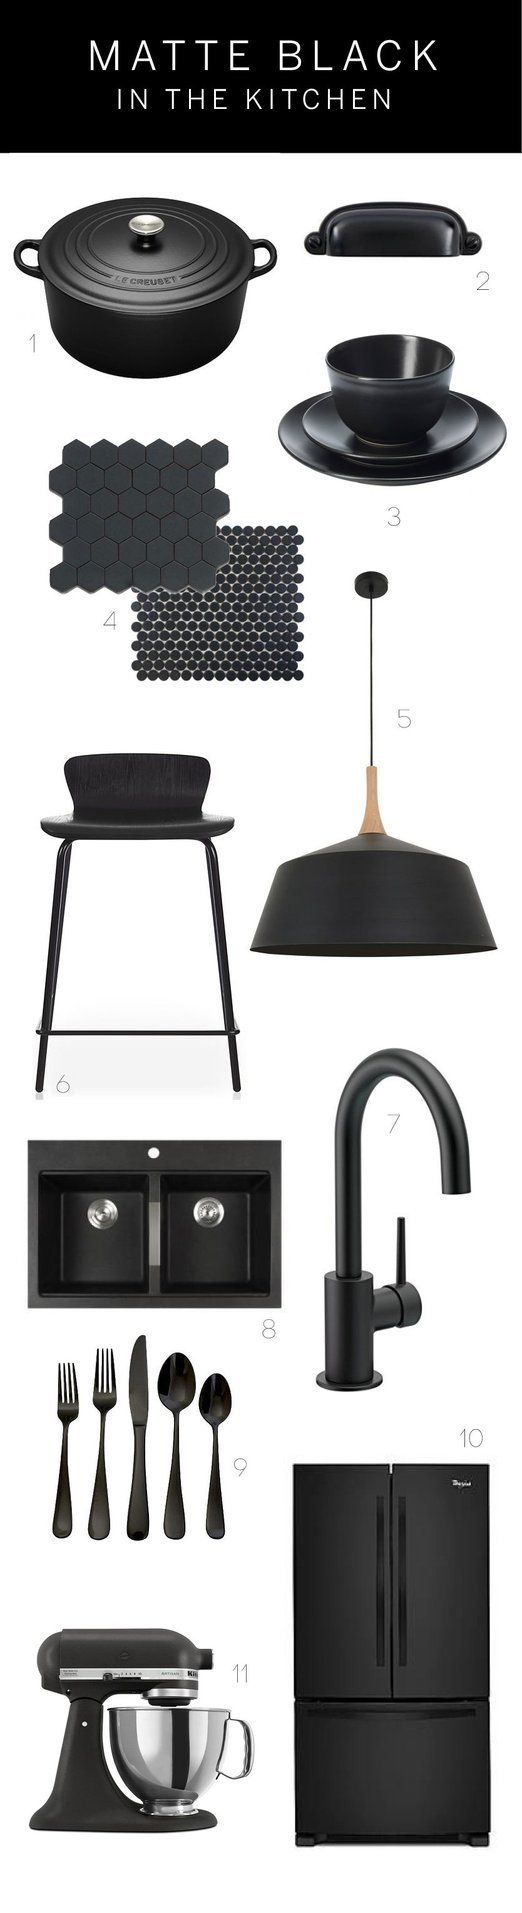 Get In My Kitchen: On Trend Matte Black Kitchen Goods ...